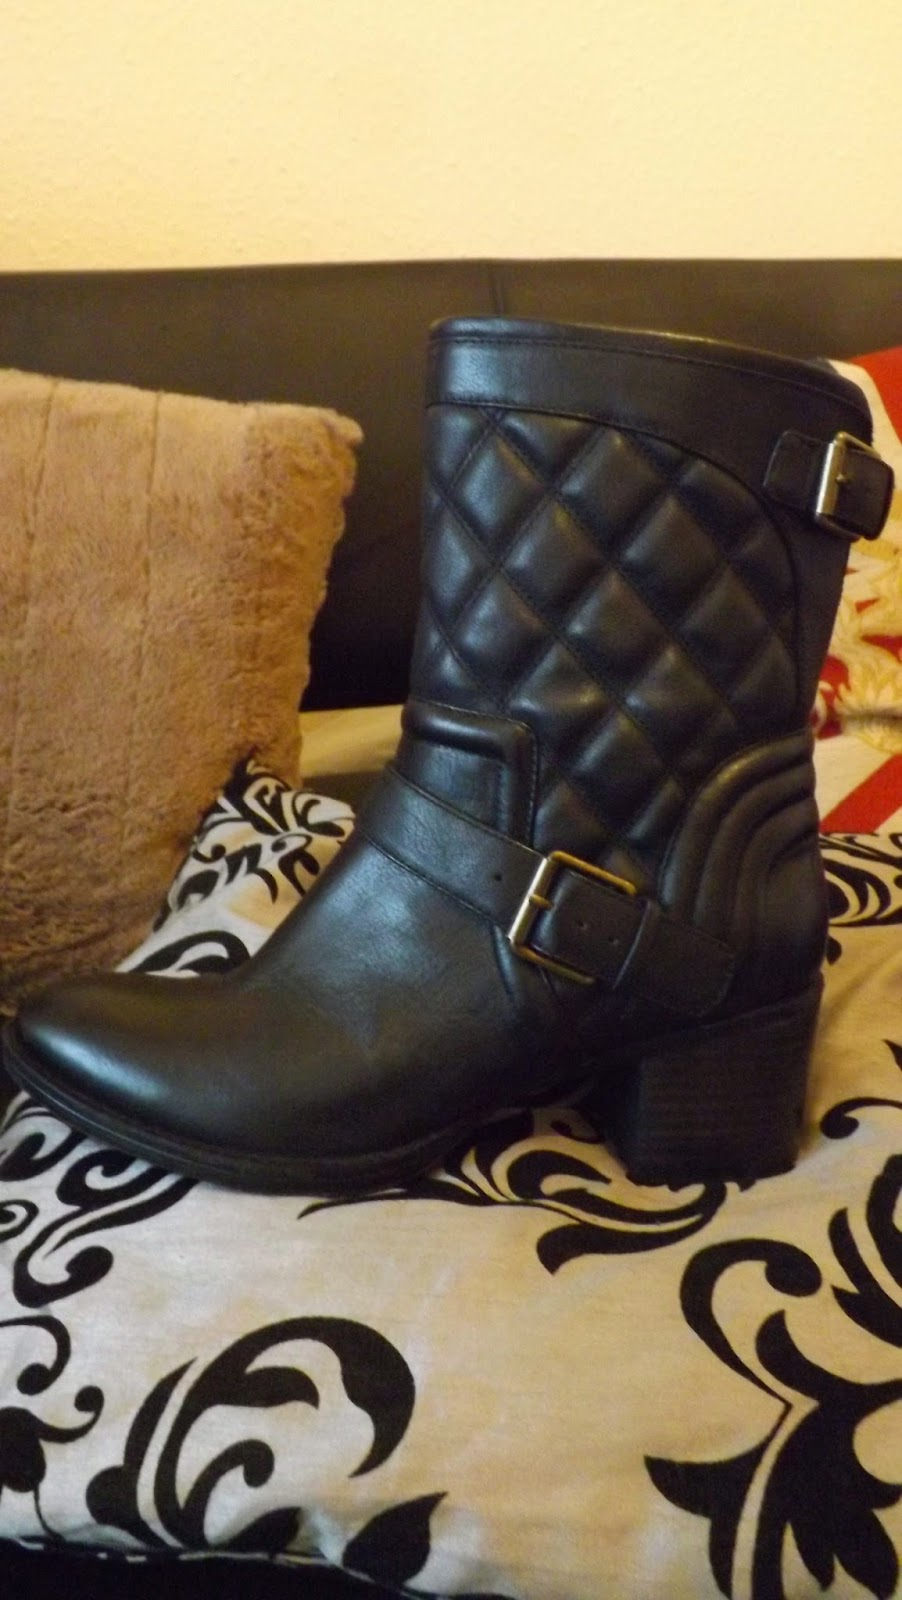 New Boots from Clarks